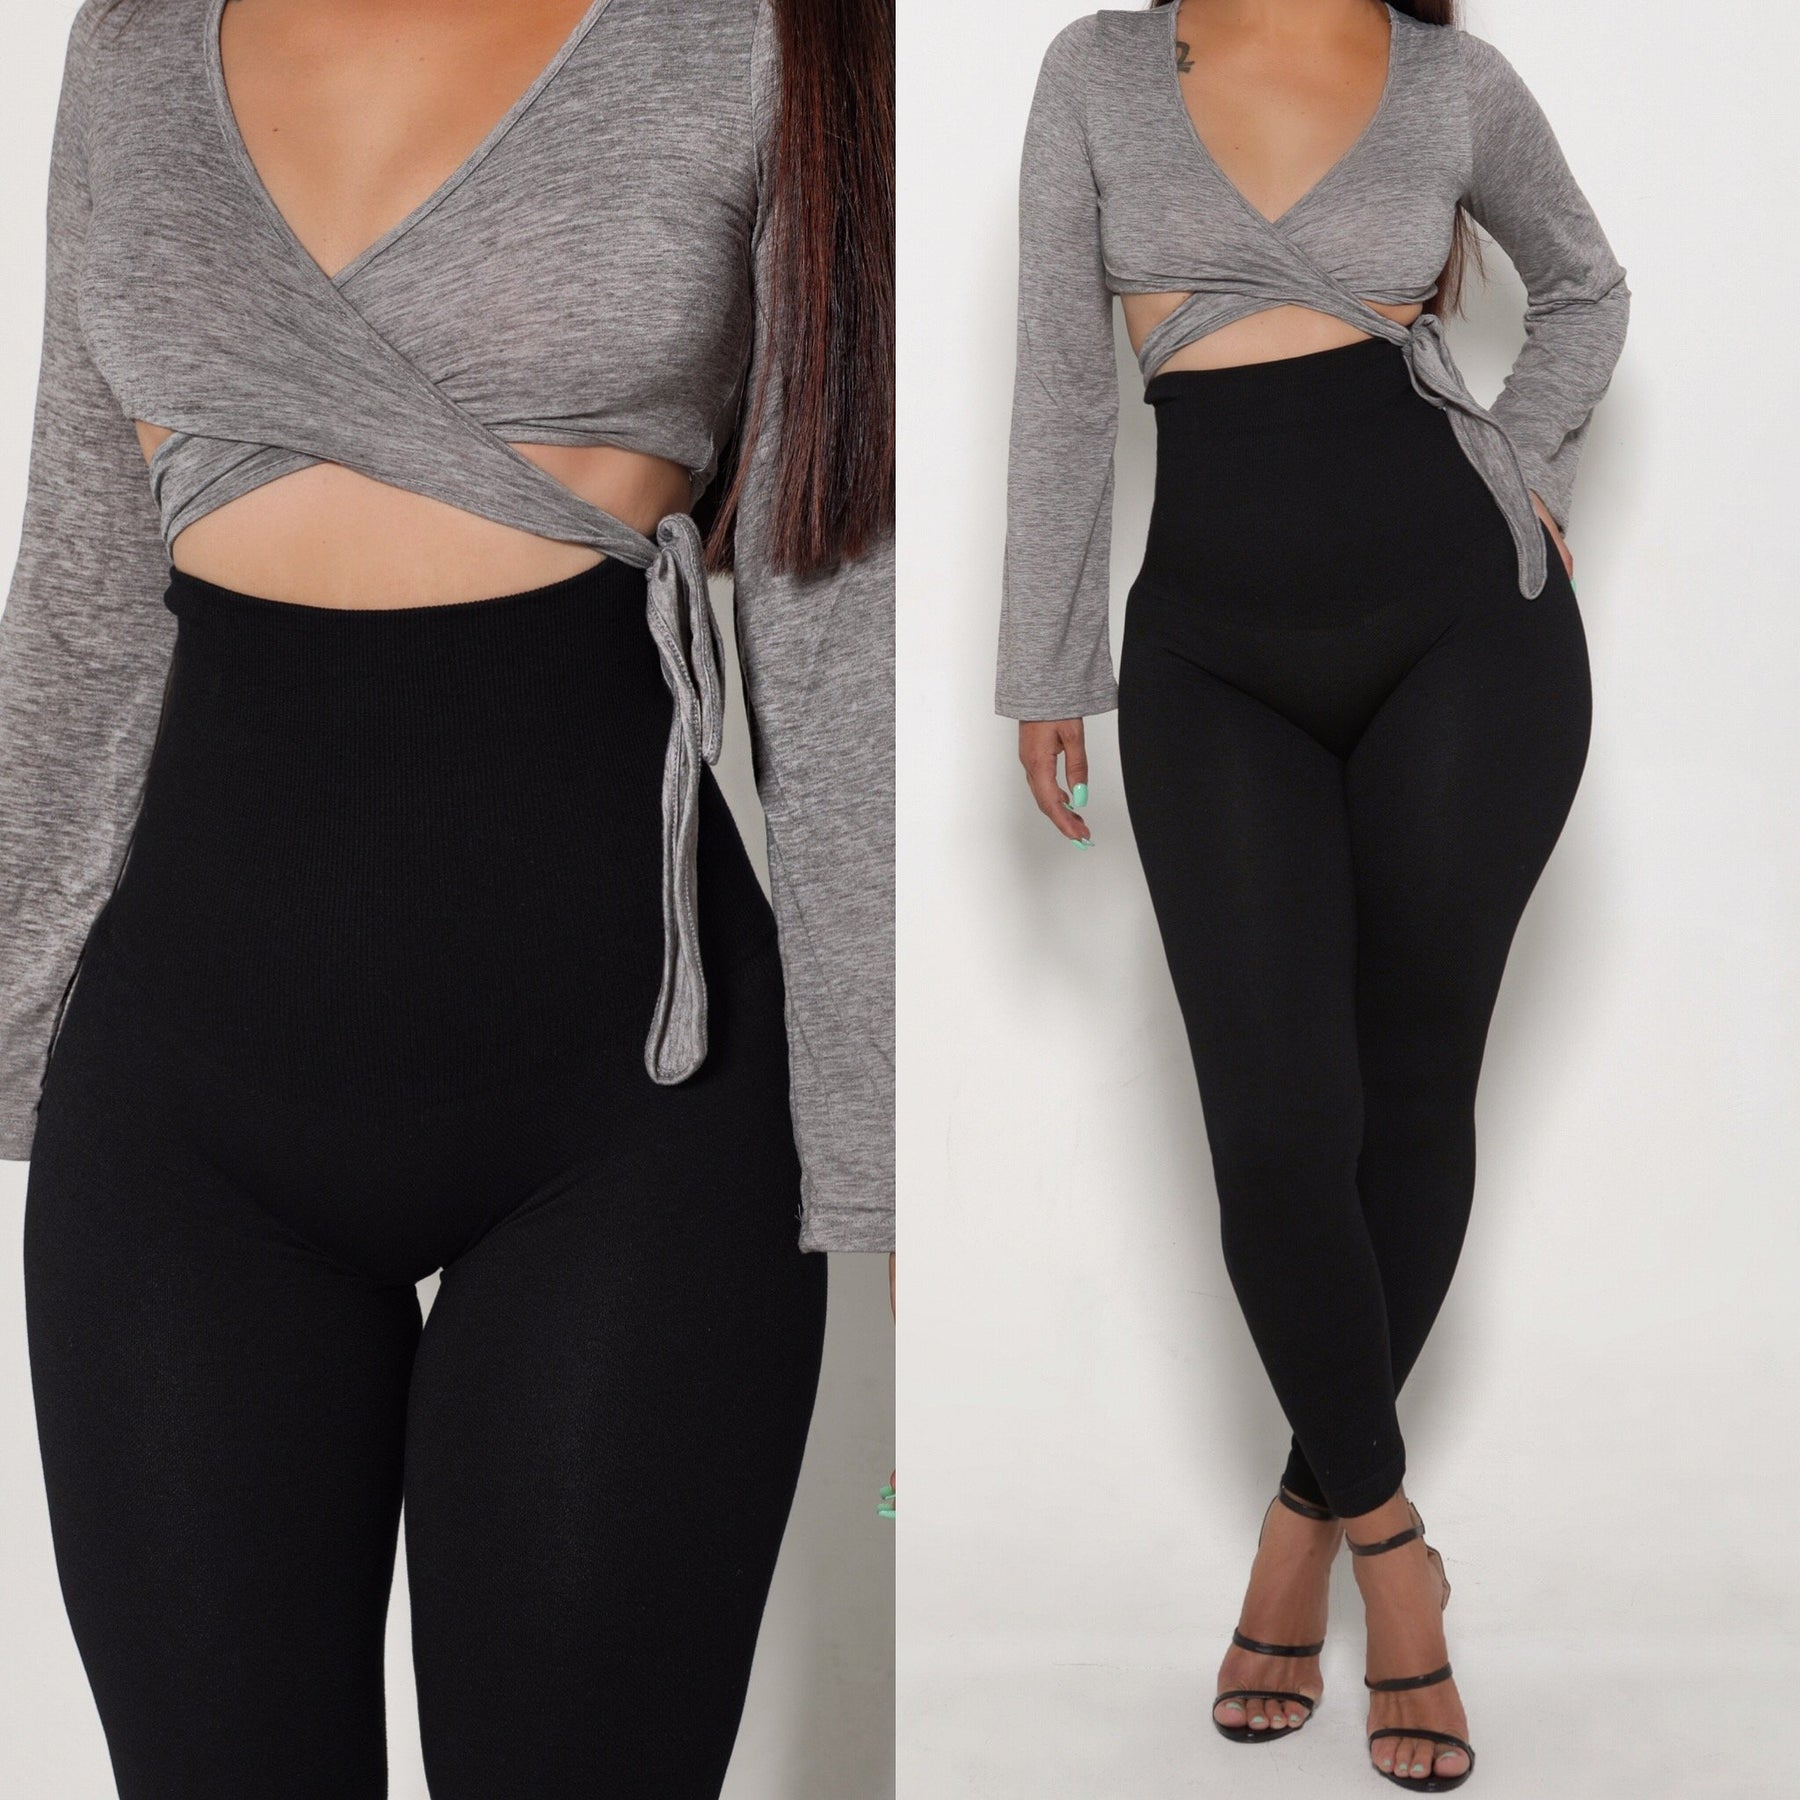 The Tummy Shaping Legging